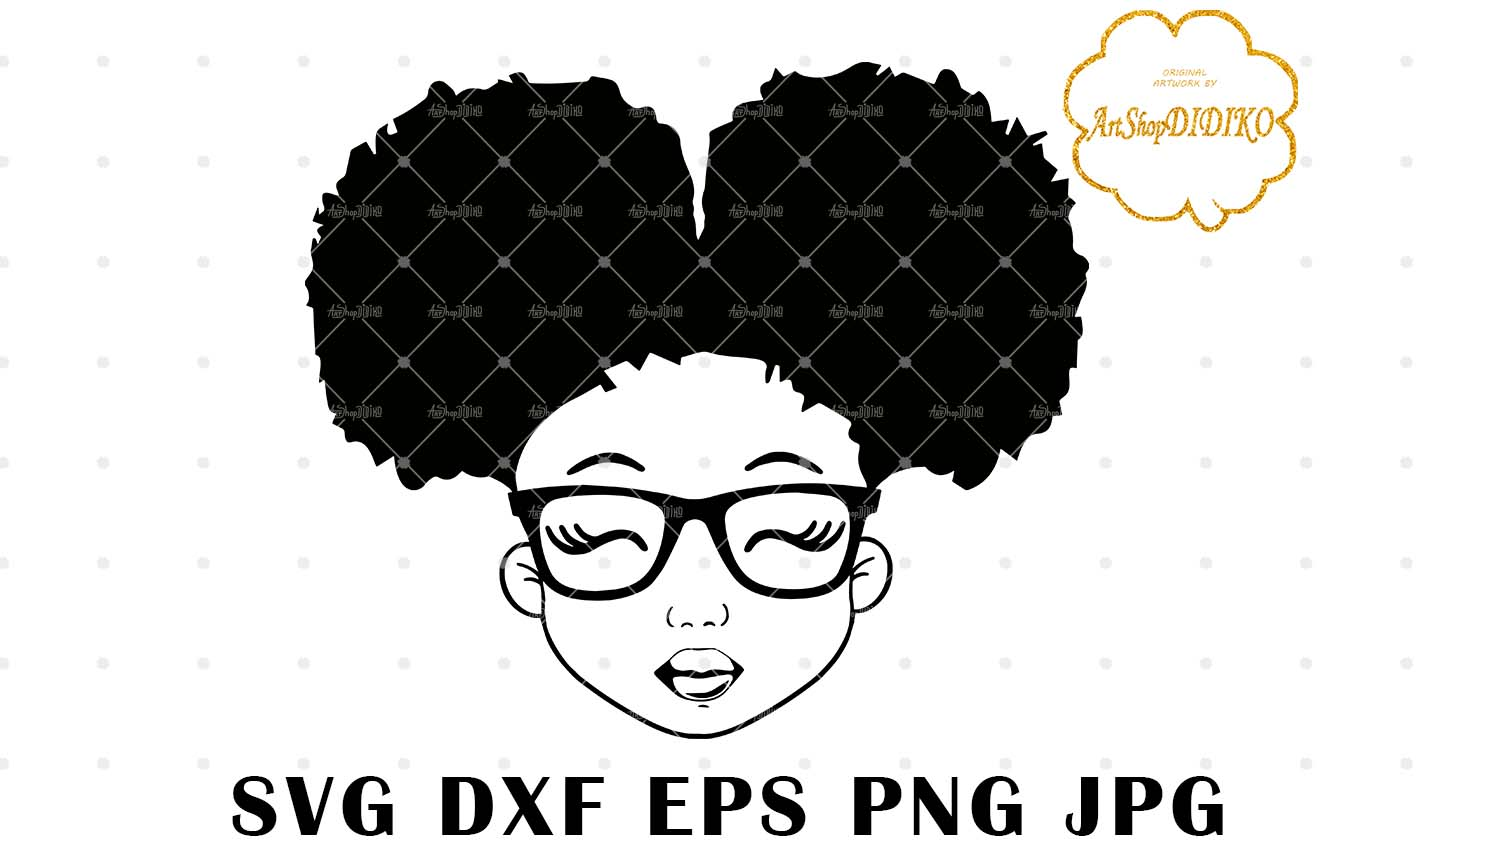 Download Cute Afro Girl With Glasses Silhouette SVG, Afro Puff Girl ...